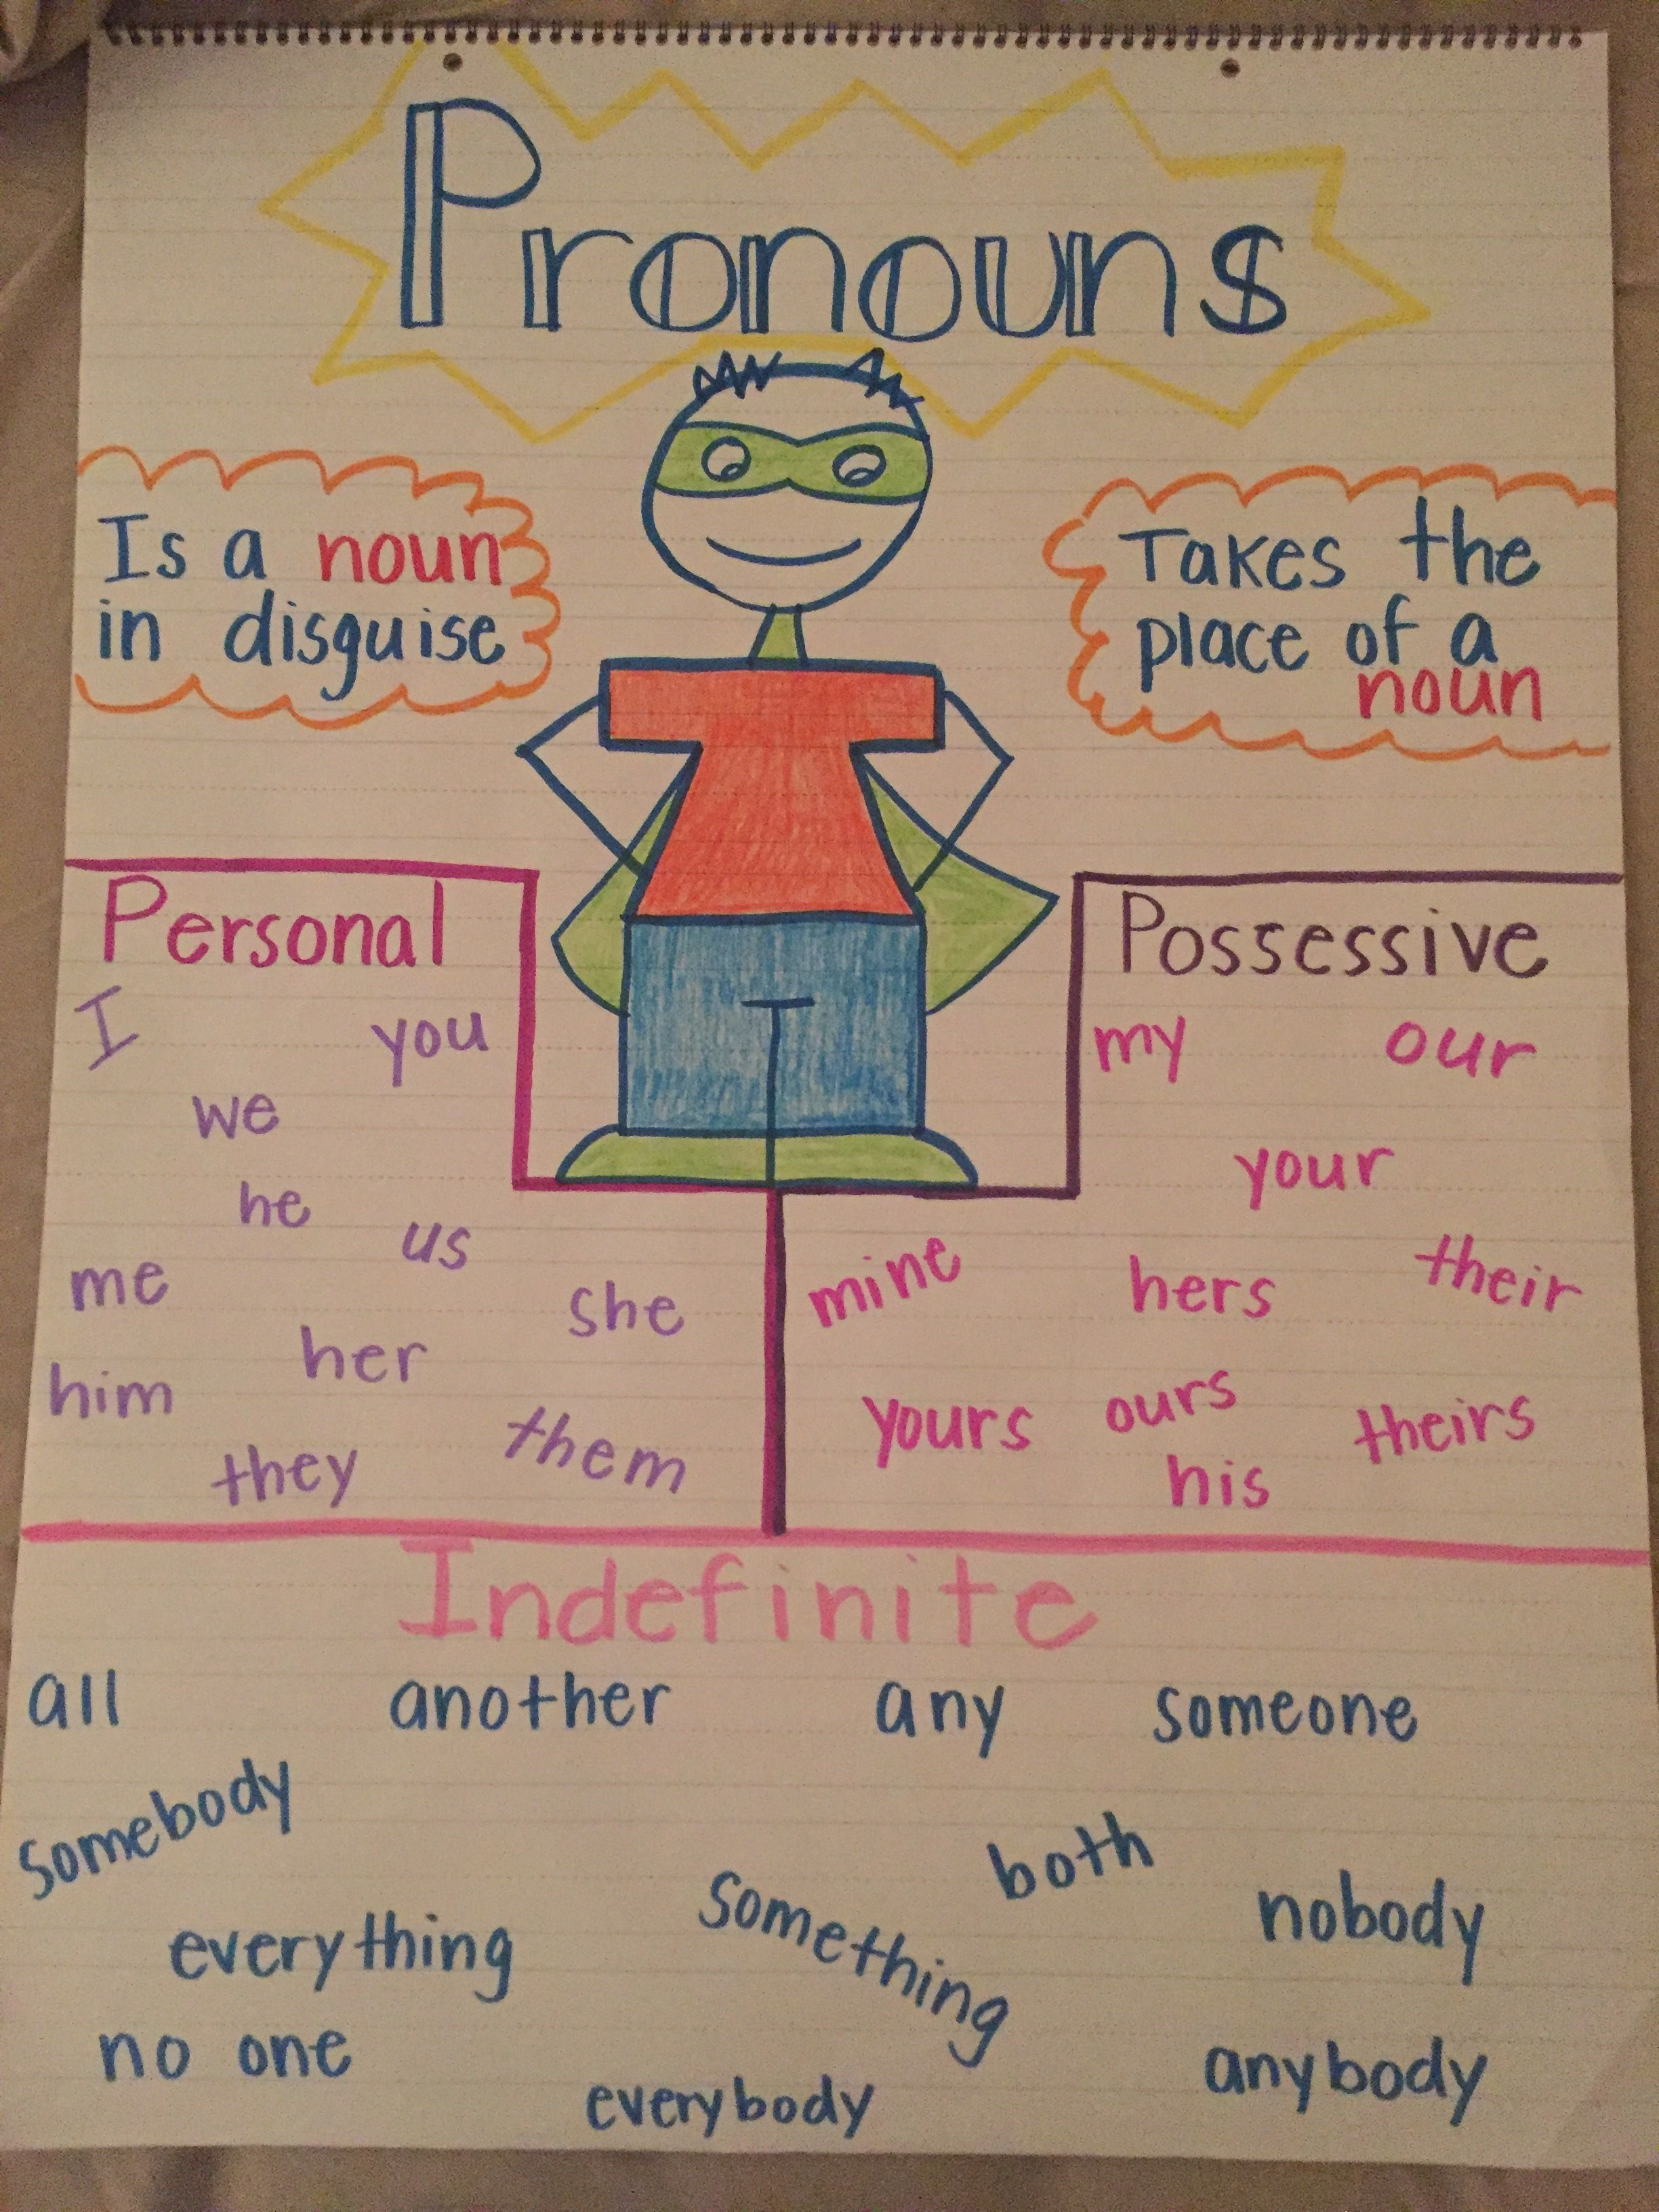 Proverbs used in essays picture 3